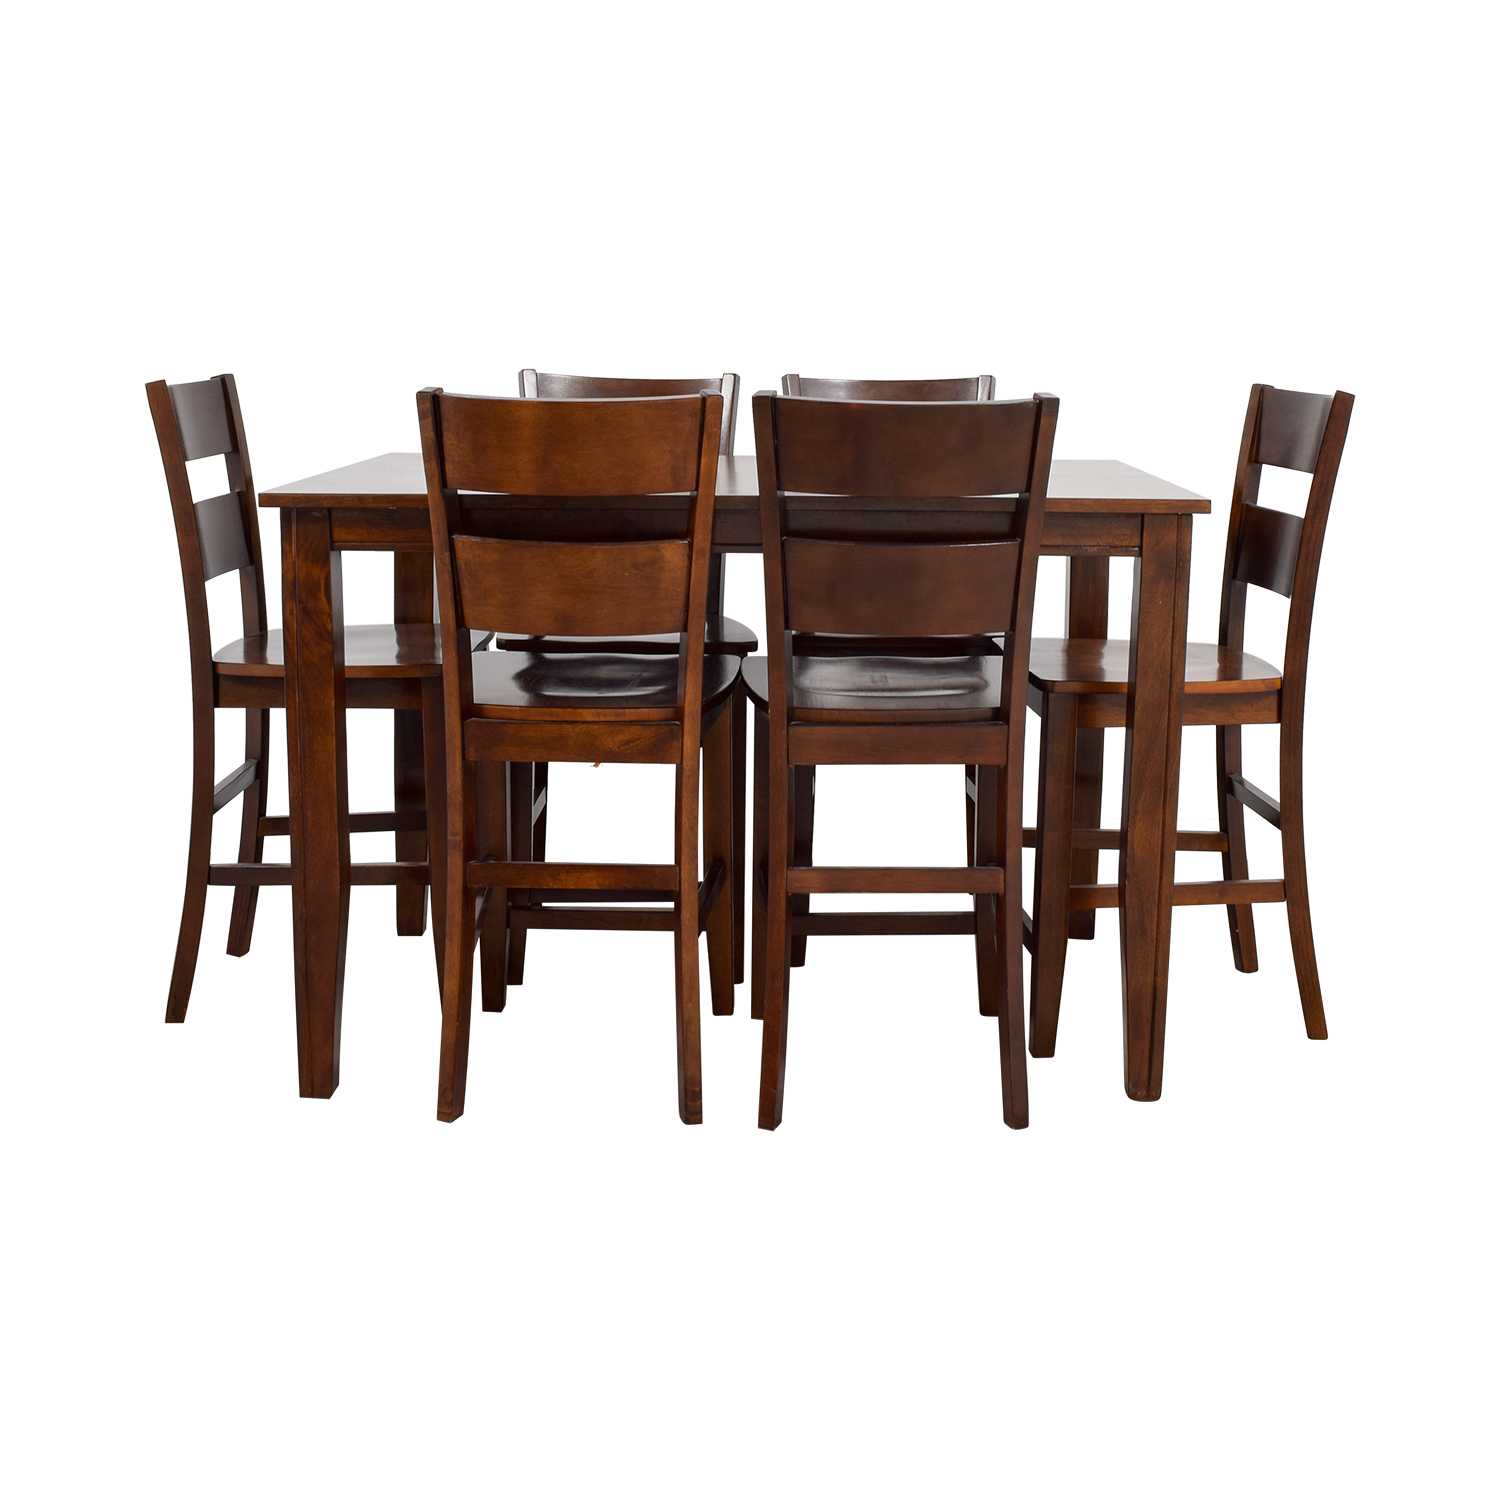 Bobu0027s Furniture Bobu0027s Furniture Wood Pub Dining Set ...